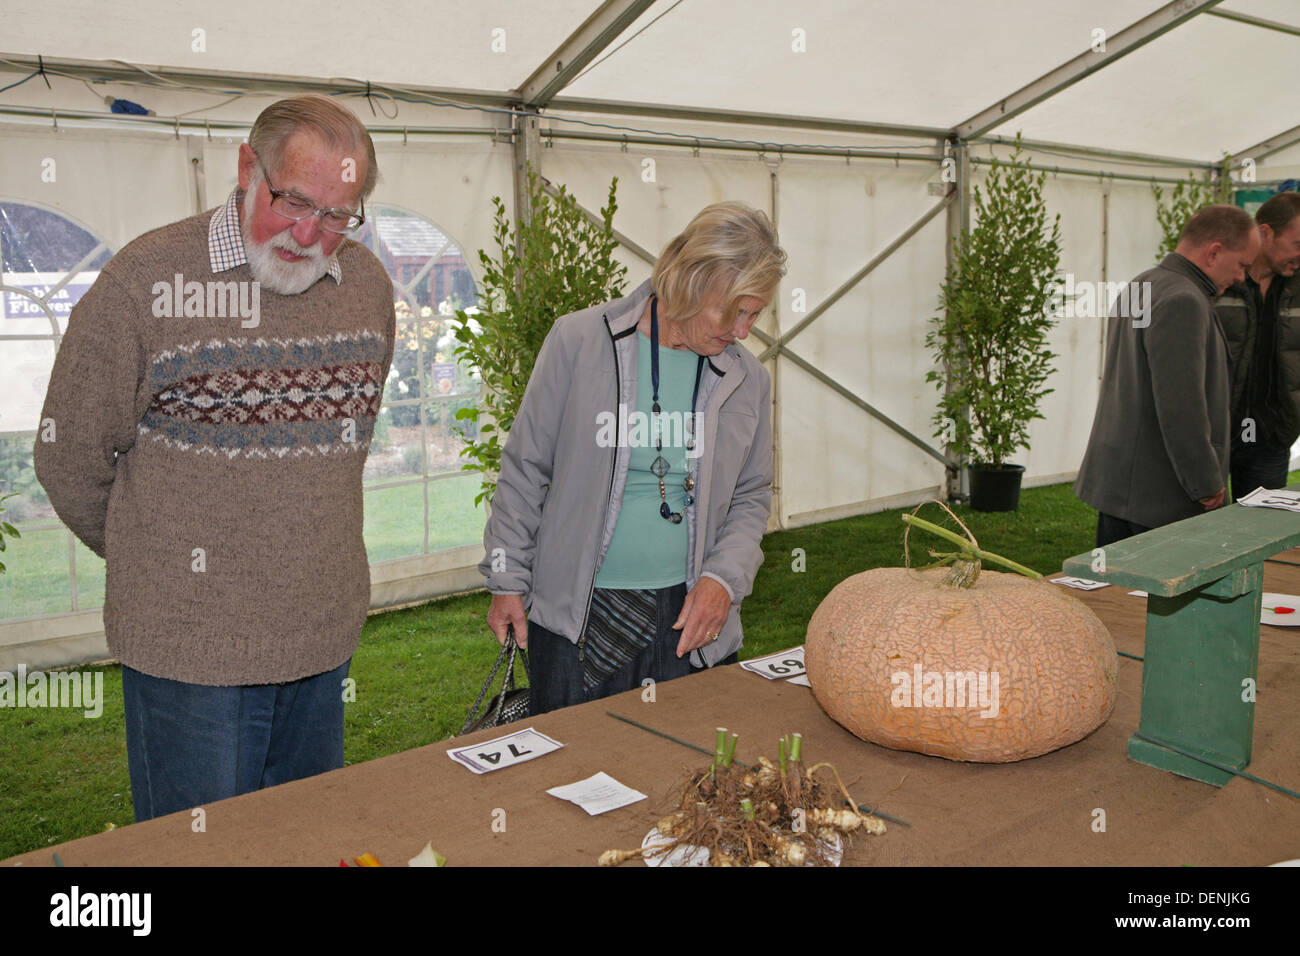 Knockholt,UK,22nd September 2013,Visitors looked at the pumpkins at the Bromley In Bloom Competitio Credit: Keith Larby/Alamy Live News - Stock Image